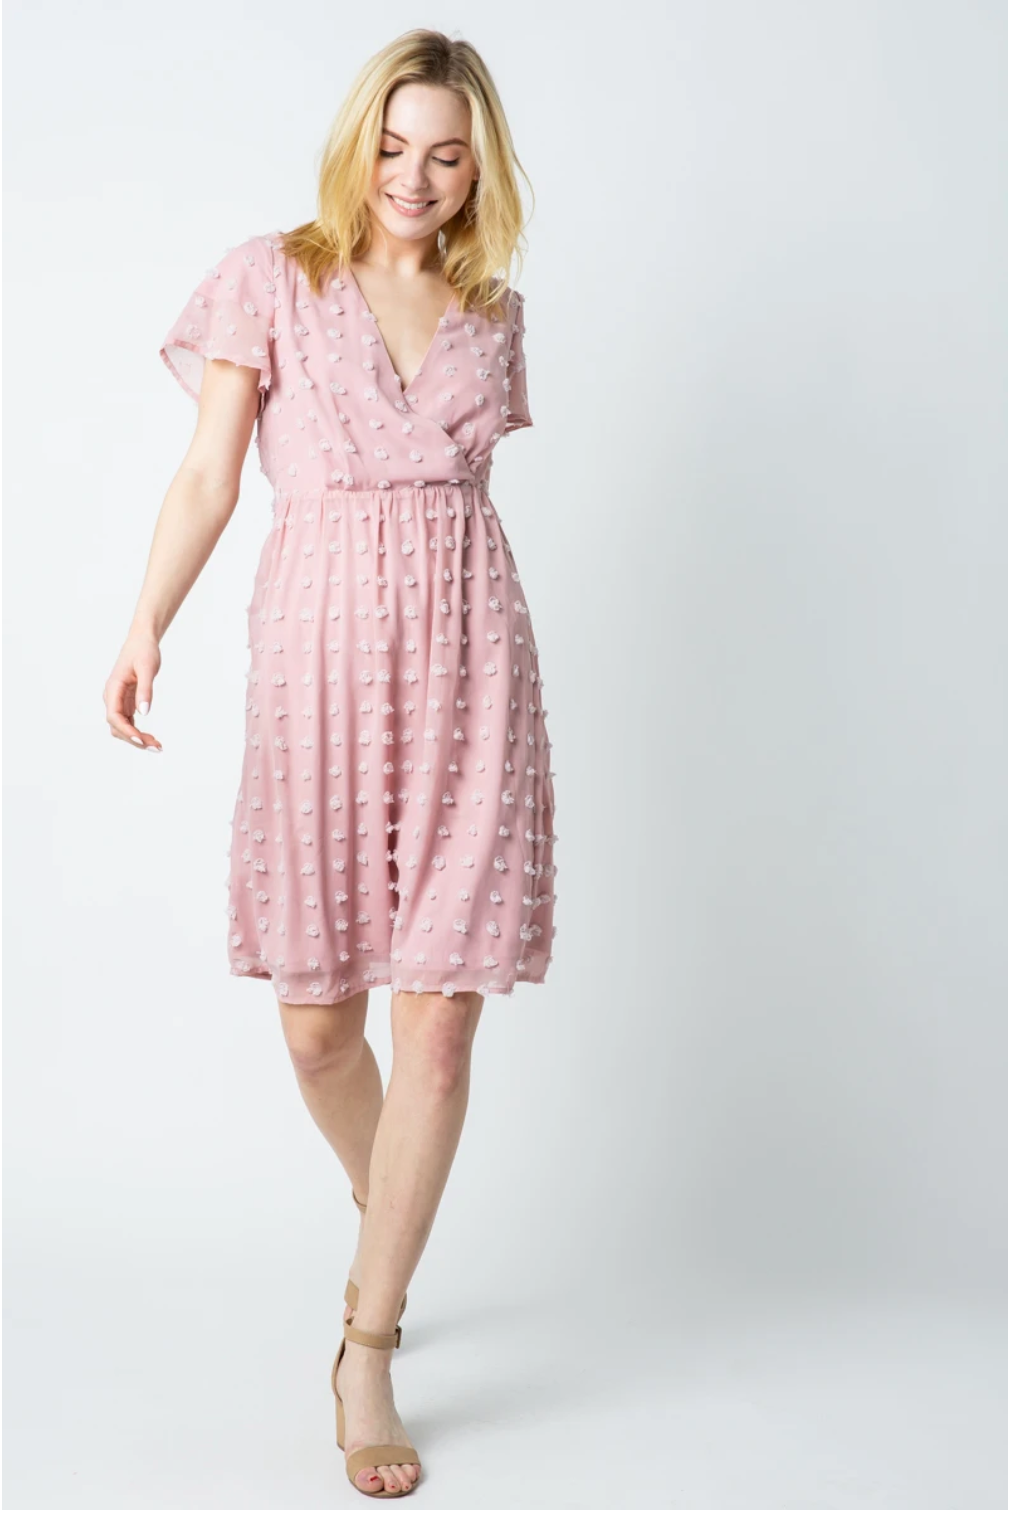 Davina Swiss Pom Dress in Mauve